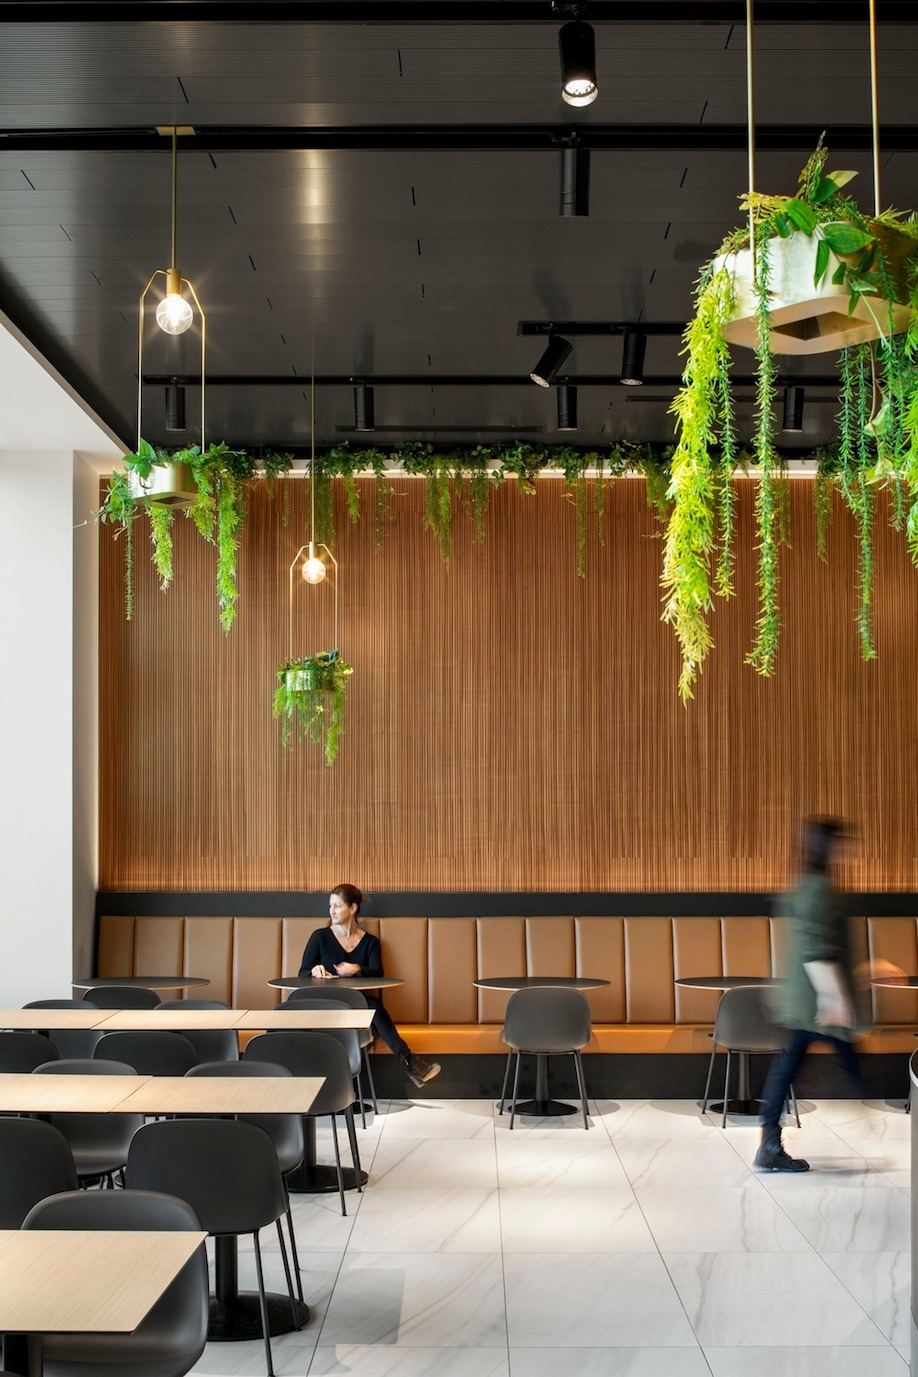 food court, food hall, La Cuisine, Rockland Center, Mount Royal, Architecture49, Humà Design+Architecture